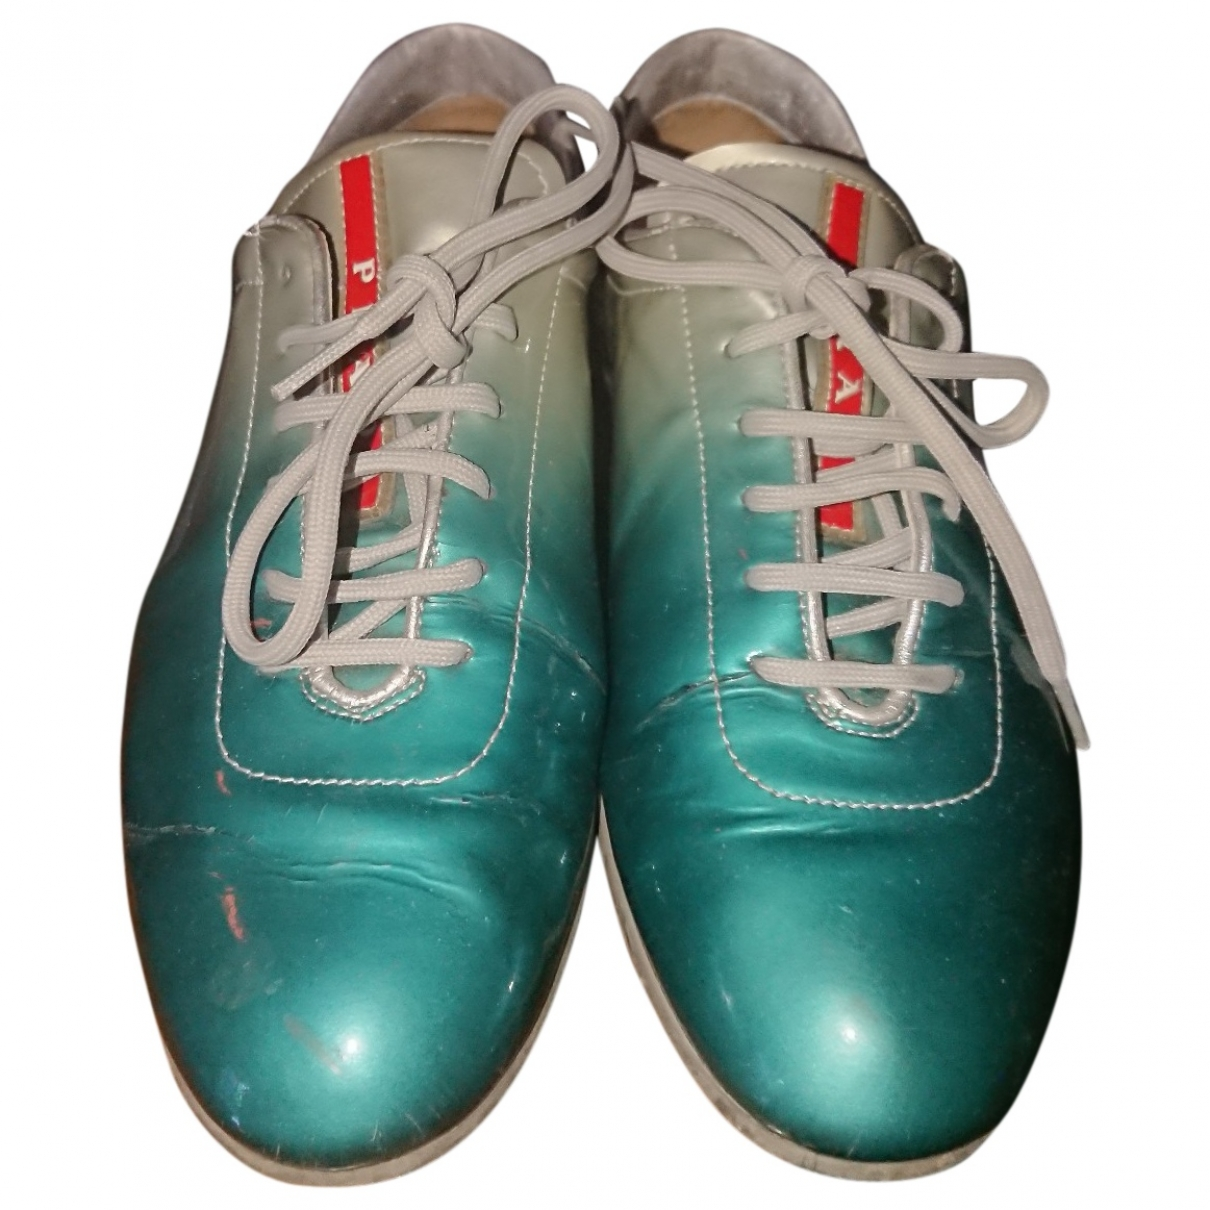 Prada \N Turquoise Patent leather Trainers for Women 39 EU